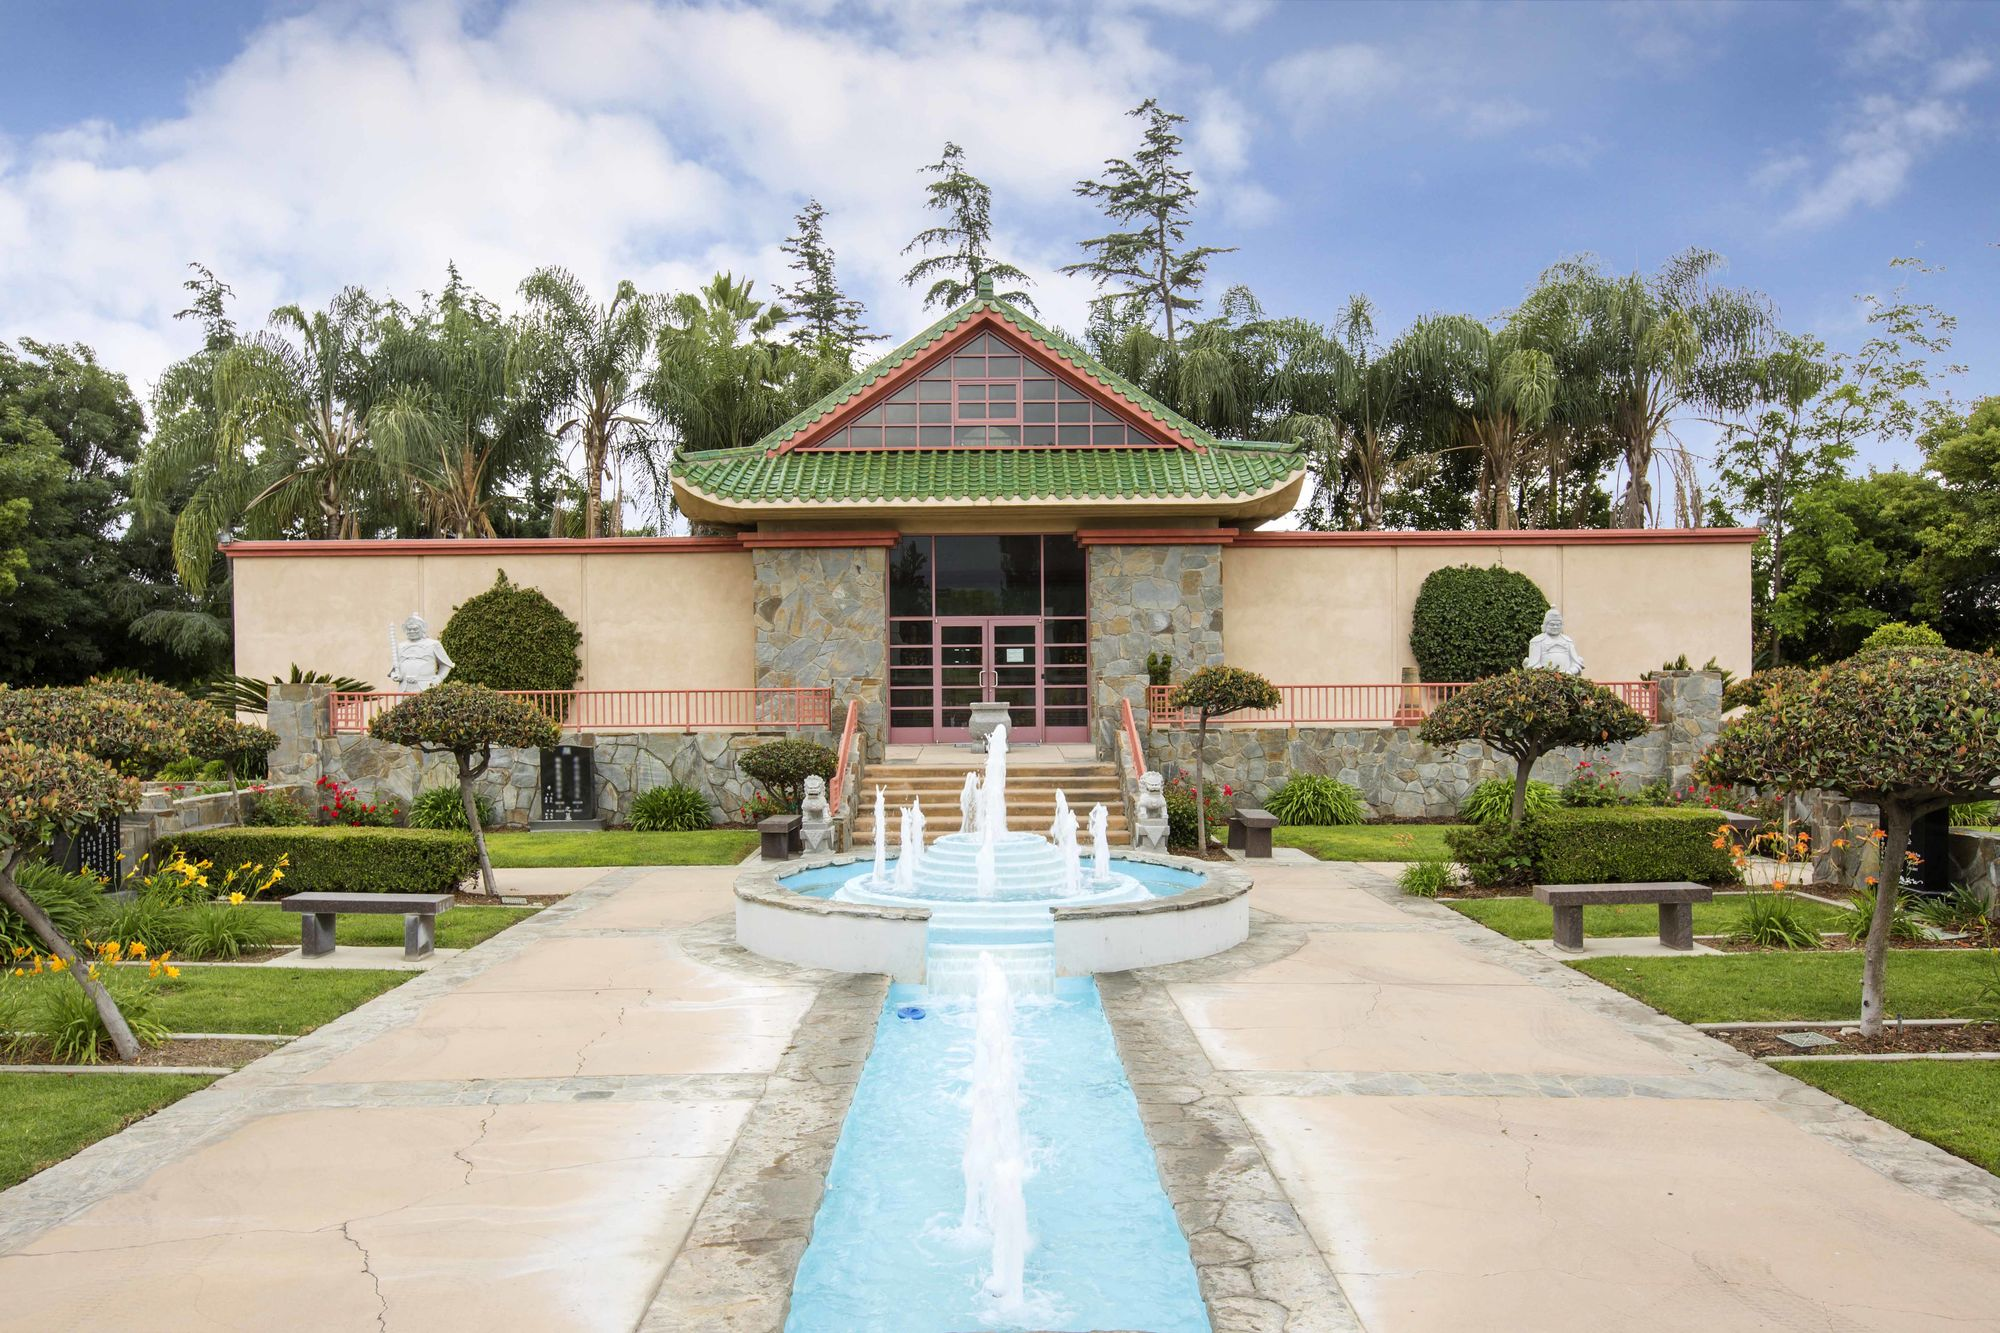 Columbarium of Eternity front entrance at Live Oak Memorial Park